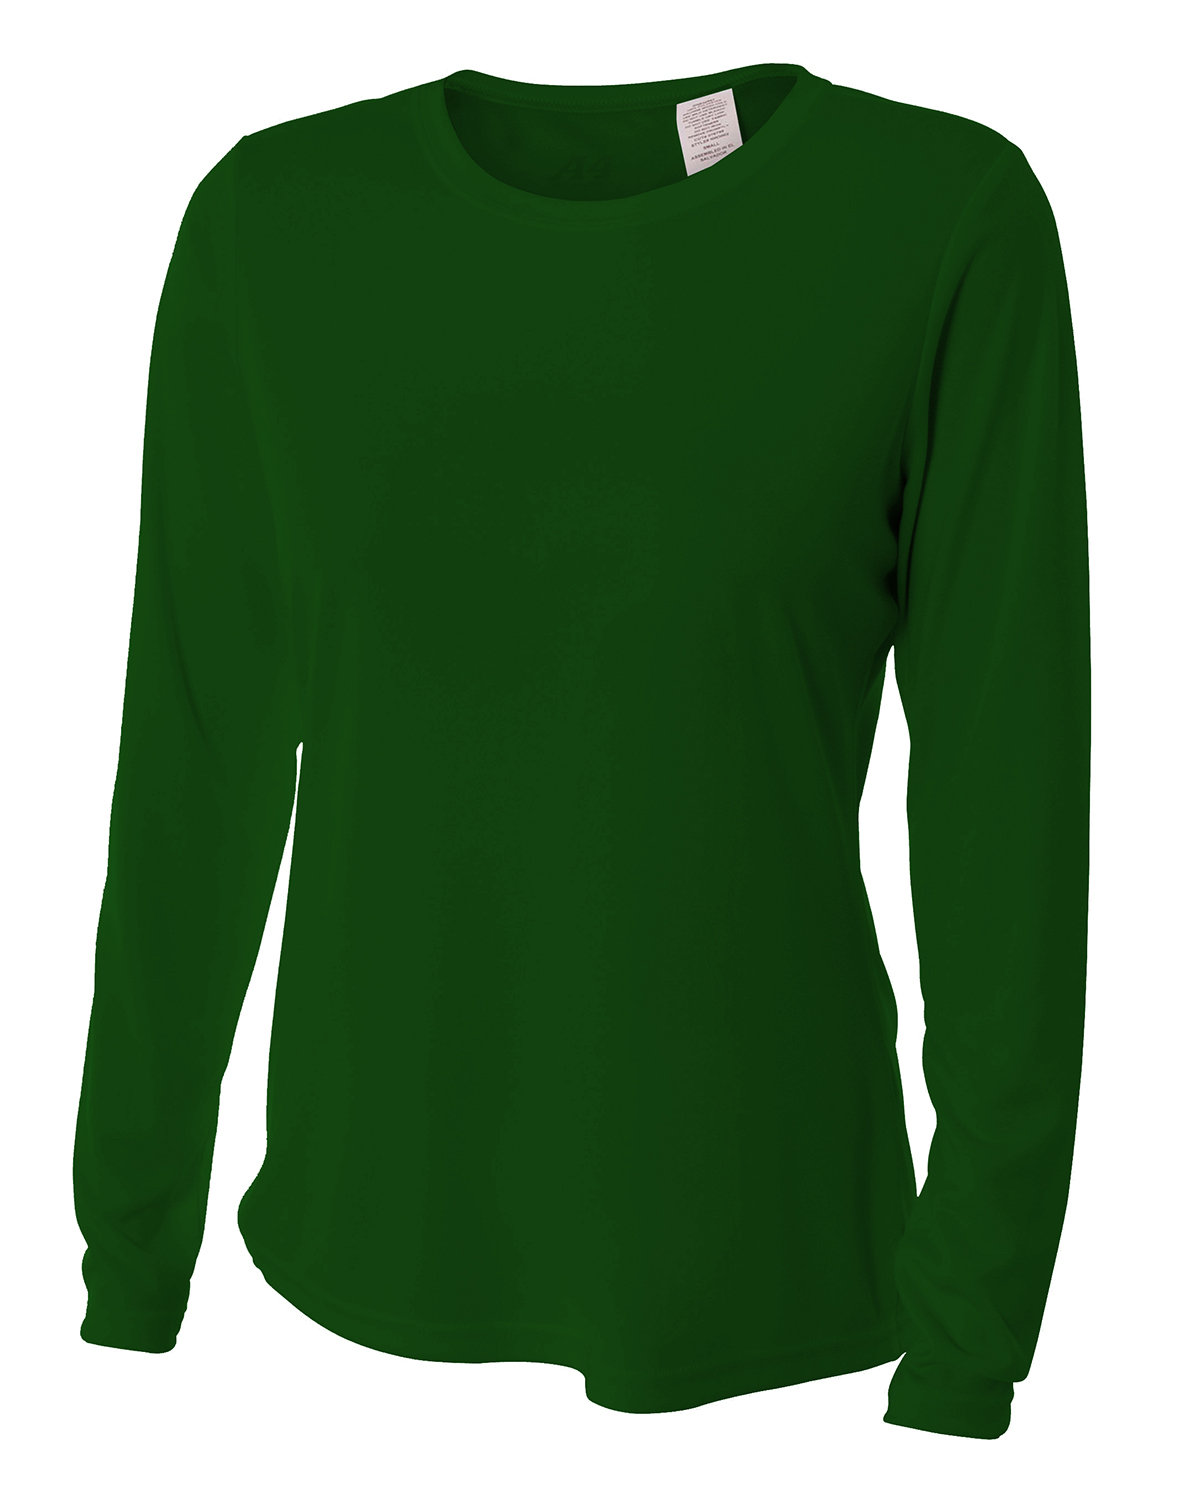 A4 Ladies' Long Sleeve Cooling Performance Crew Shirt FOREST